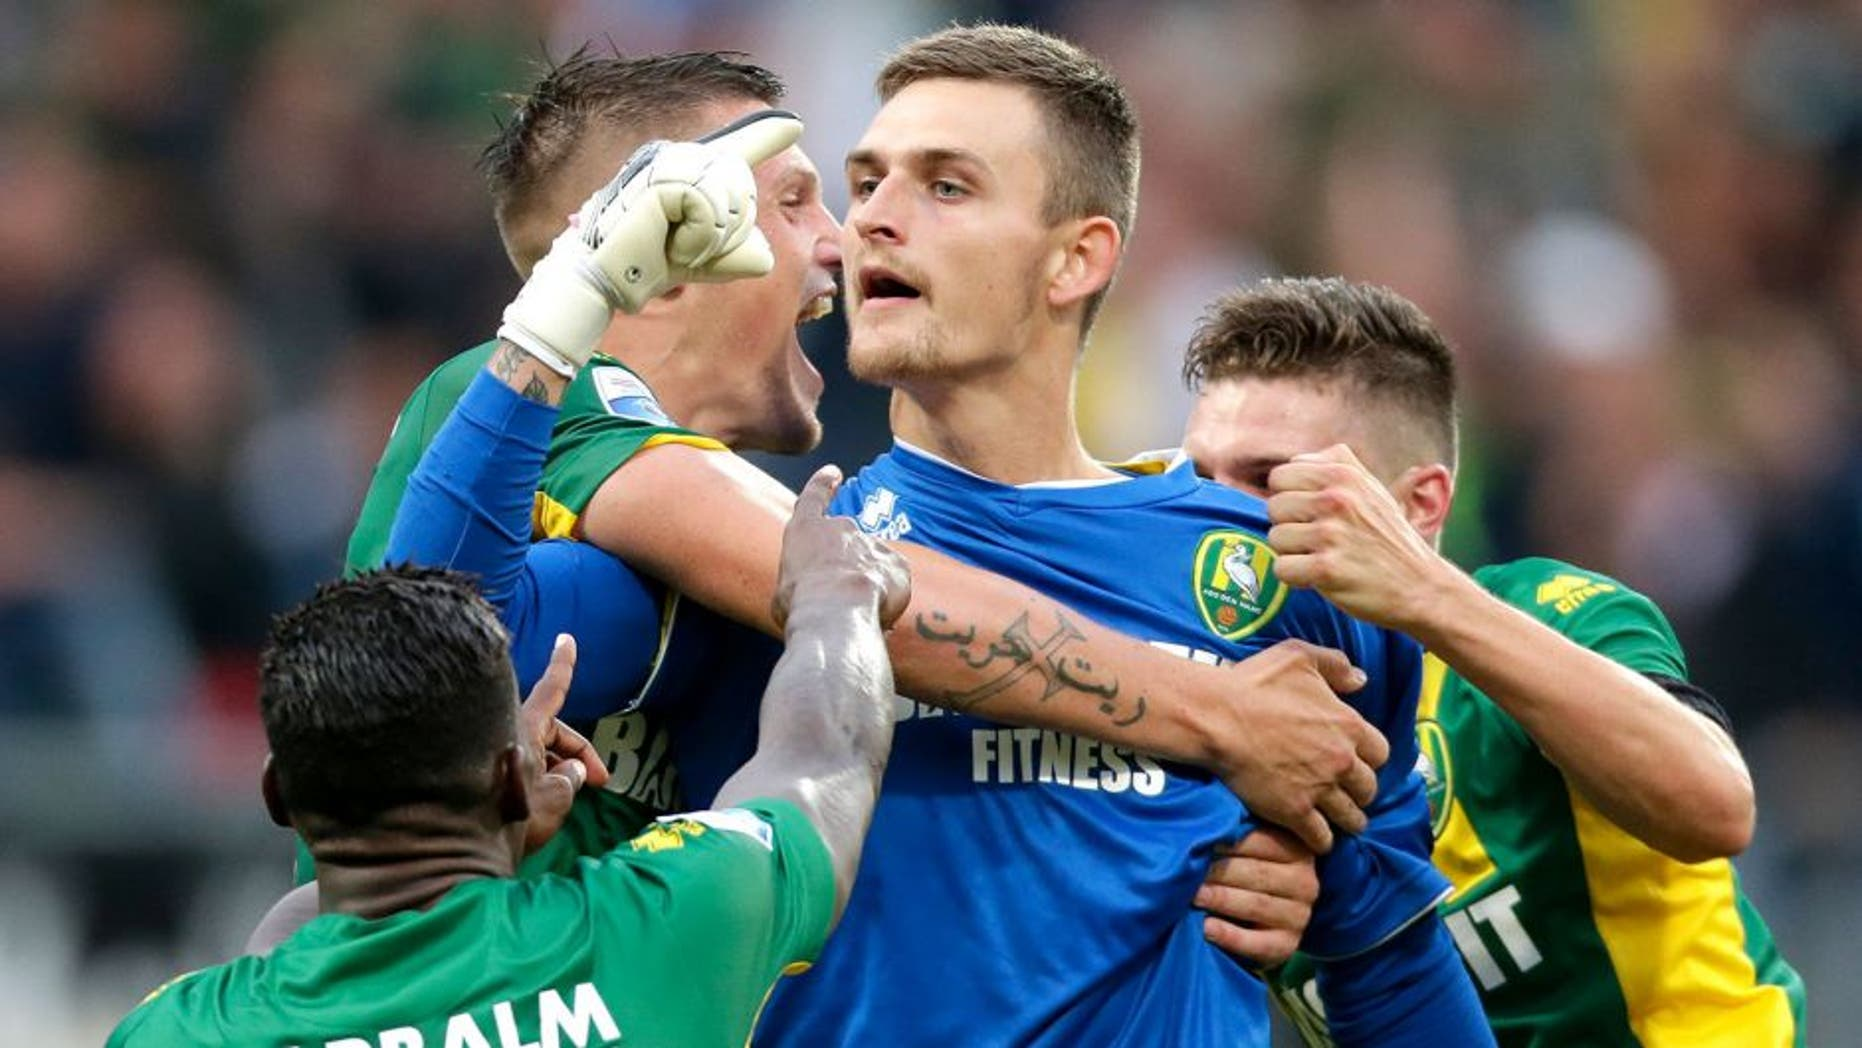 Martin Hansen of ADO Den Haag during the Dutch Eredivisie match between ADO Den Haag and PSV Eindhoven at Kyocera stadium on August 11, 2015 in The Hague, The Netherlands(Photo by VI Images via Getty Images)